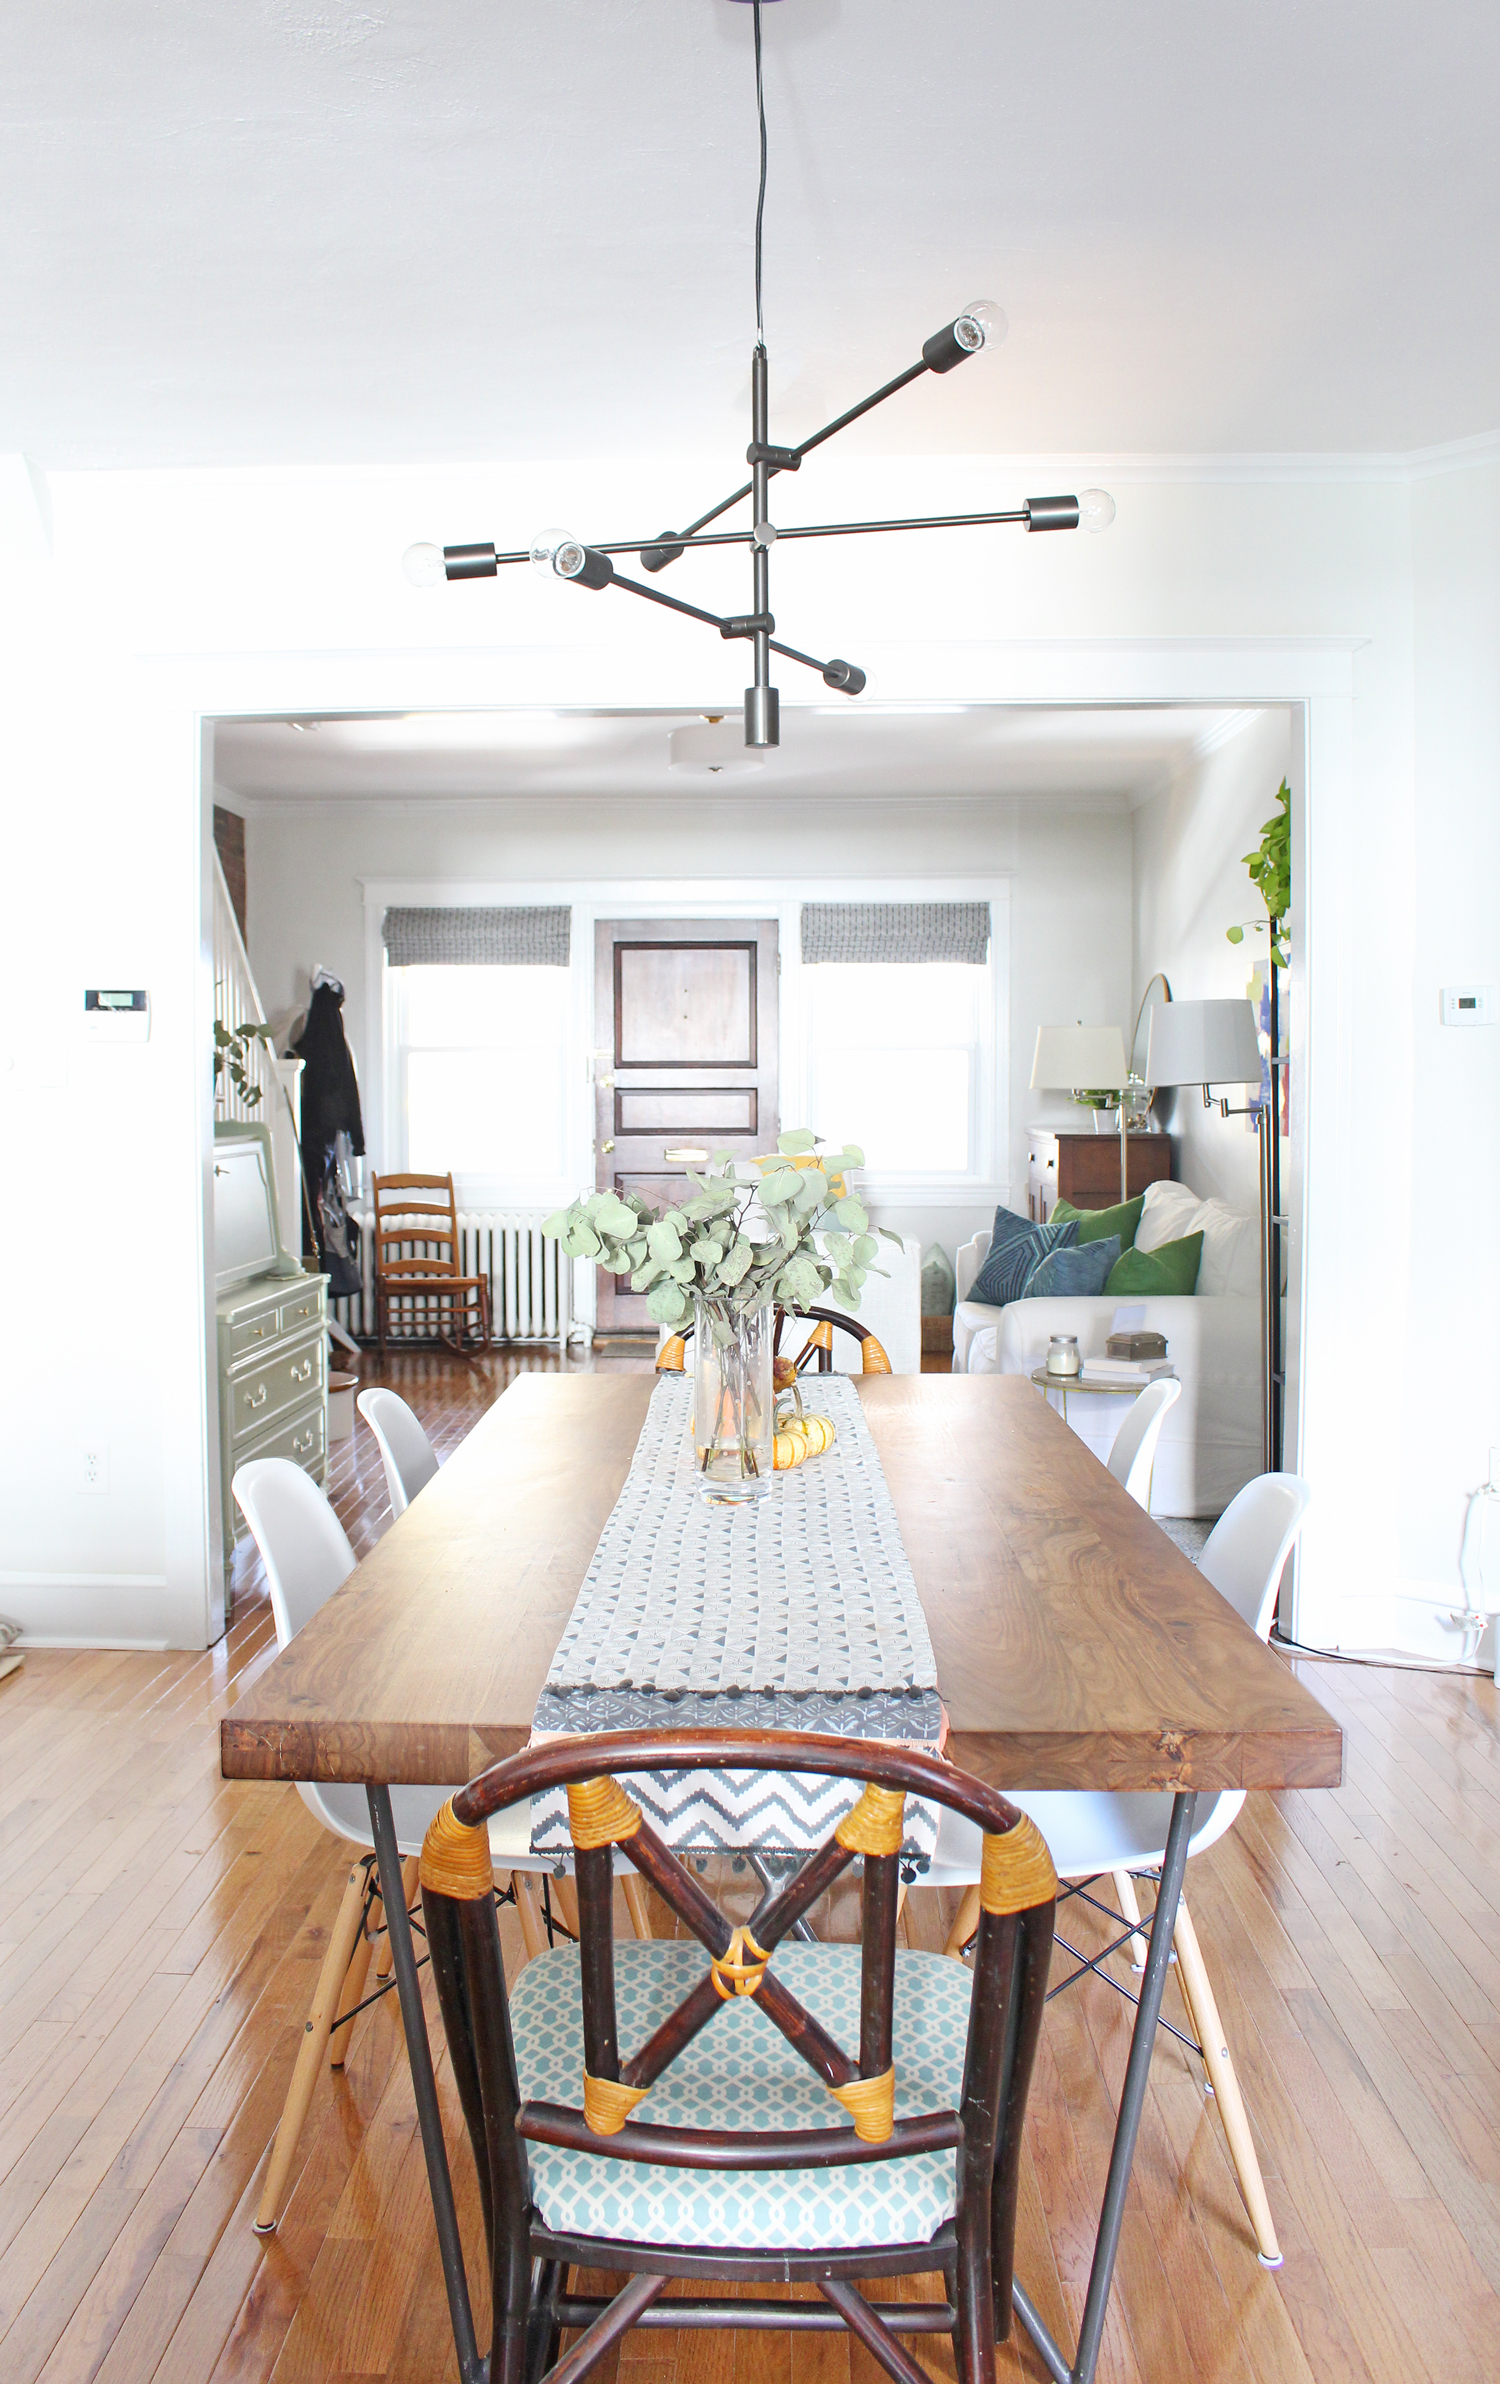 Eclectic-Modern-Dining-Room-1.jpg